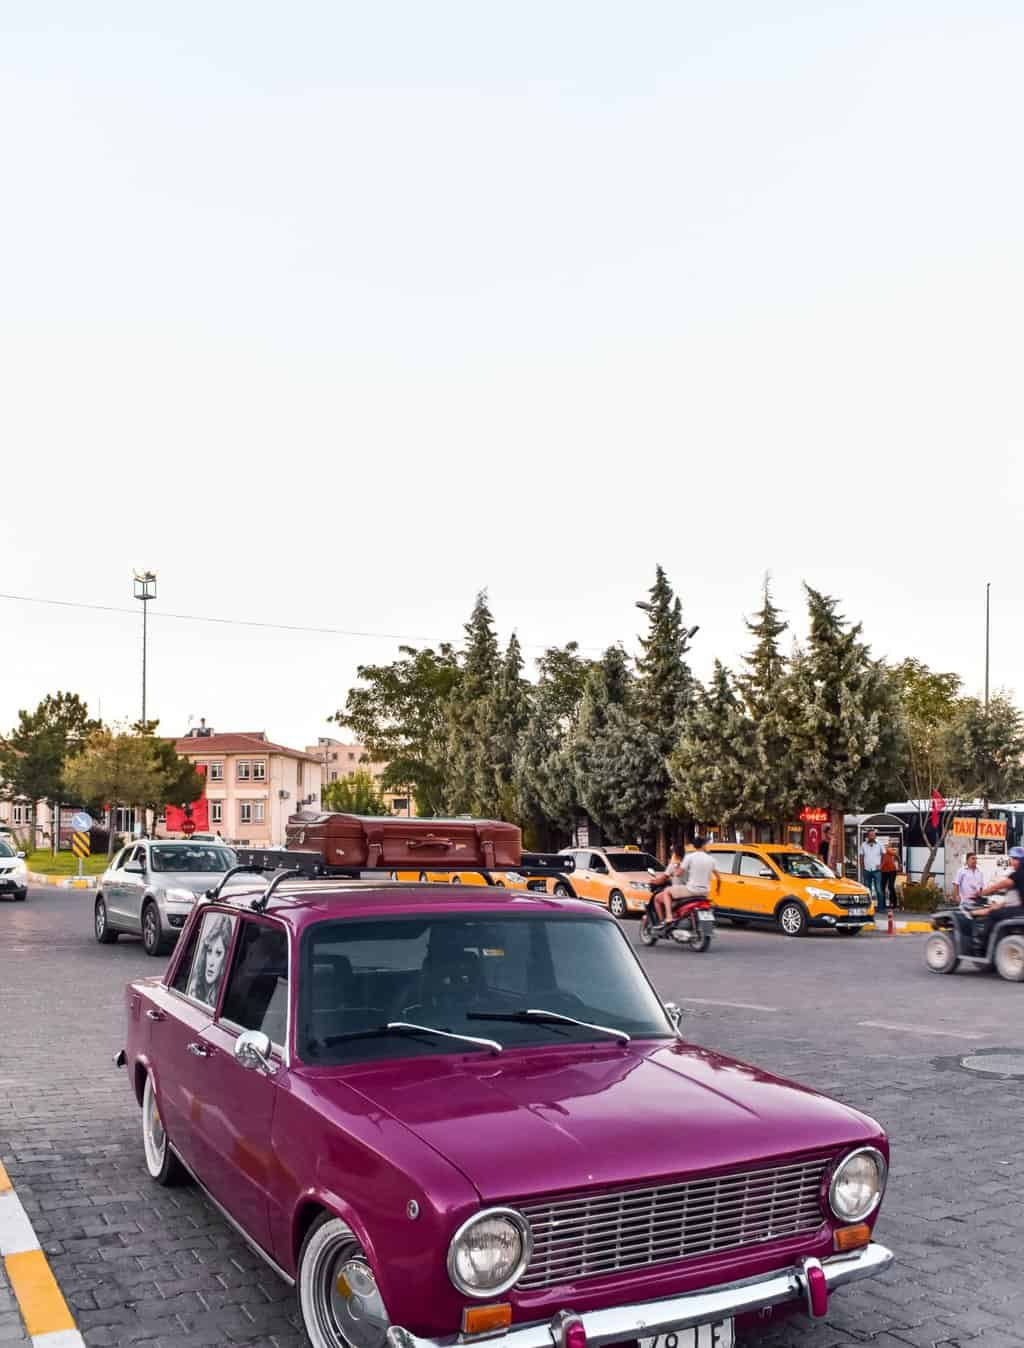 Exploring the town of Cappadocia